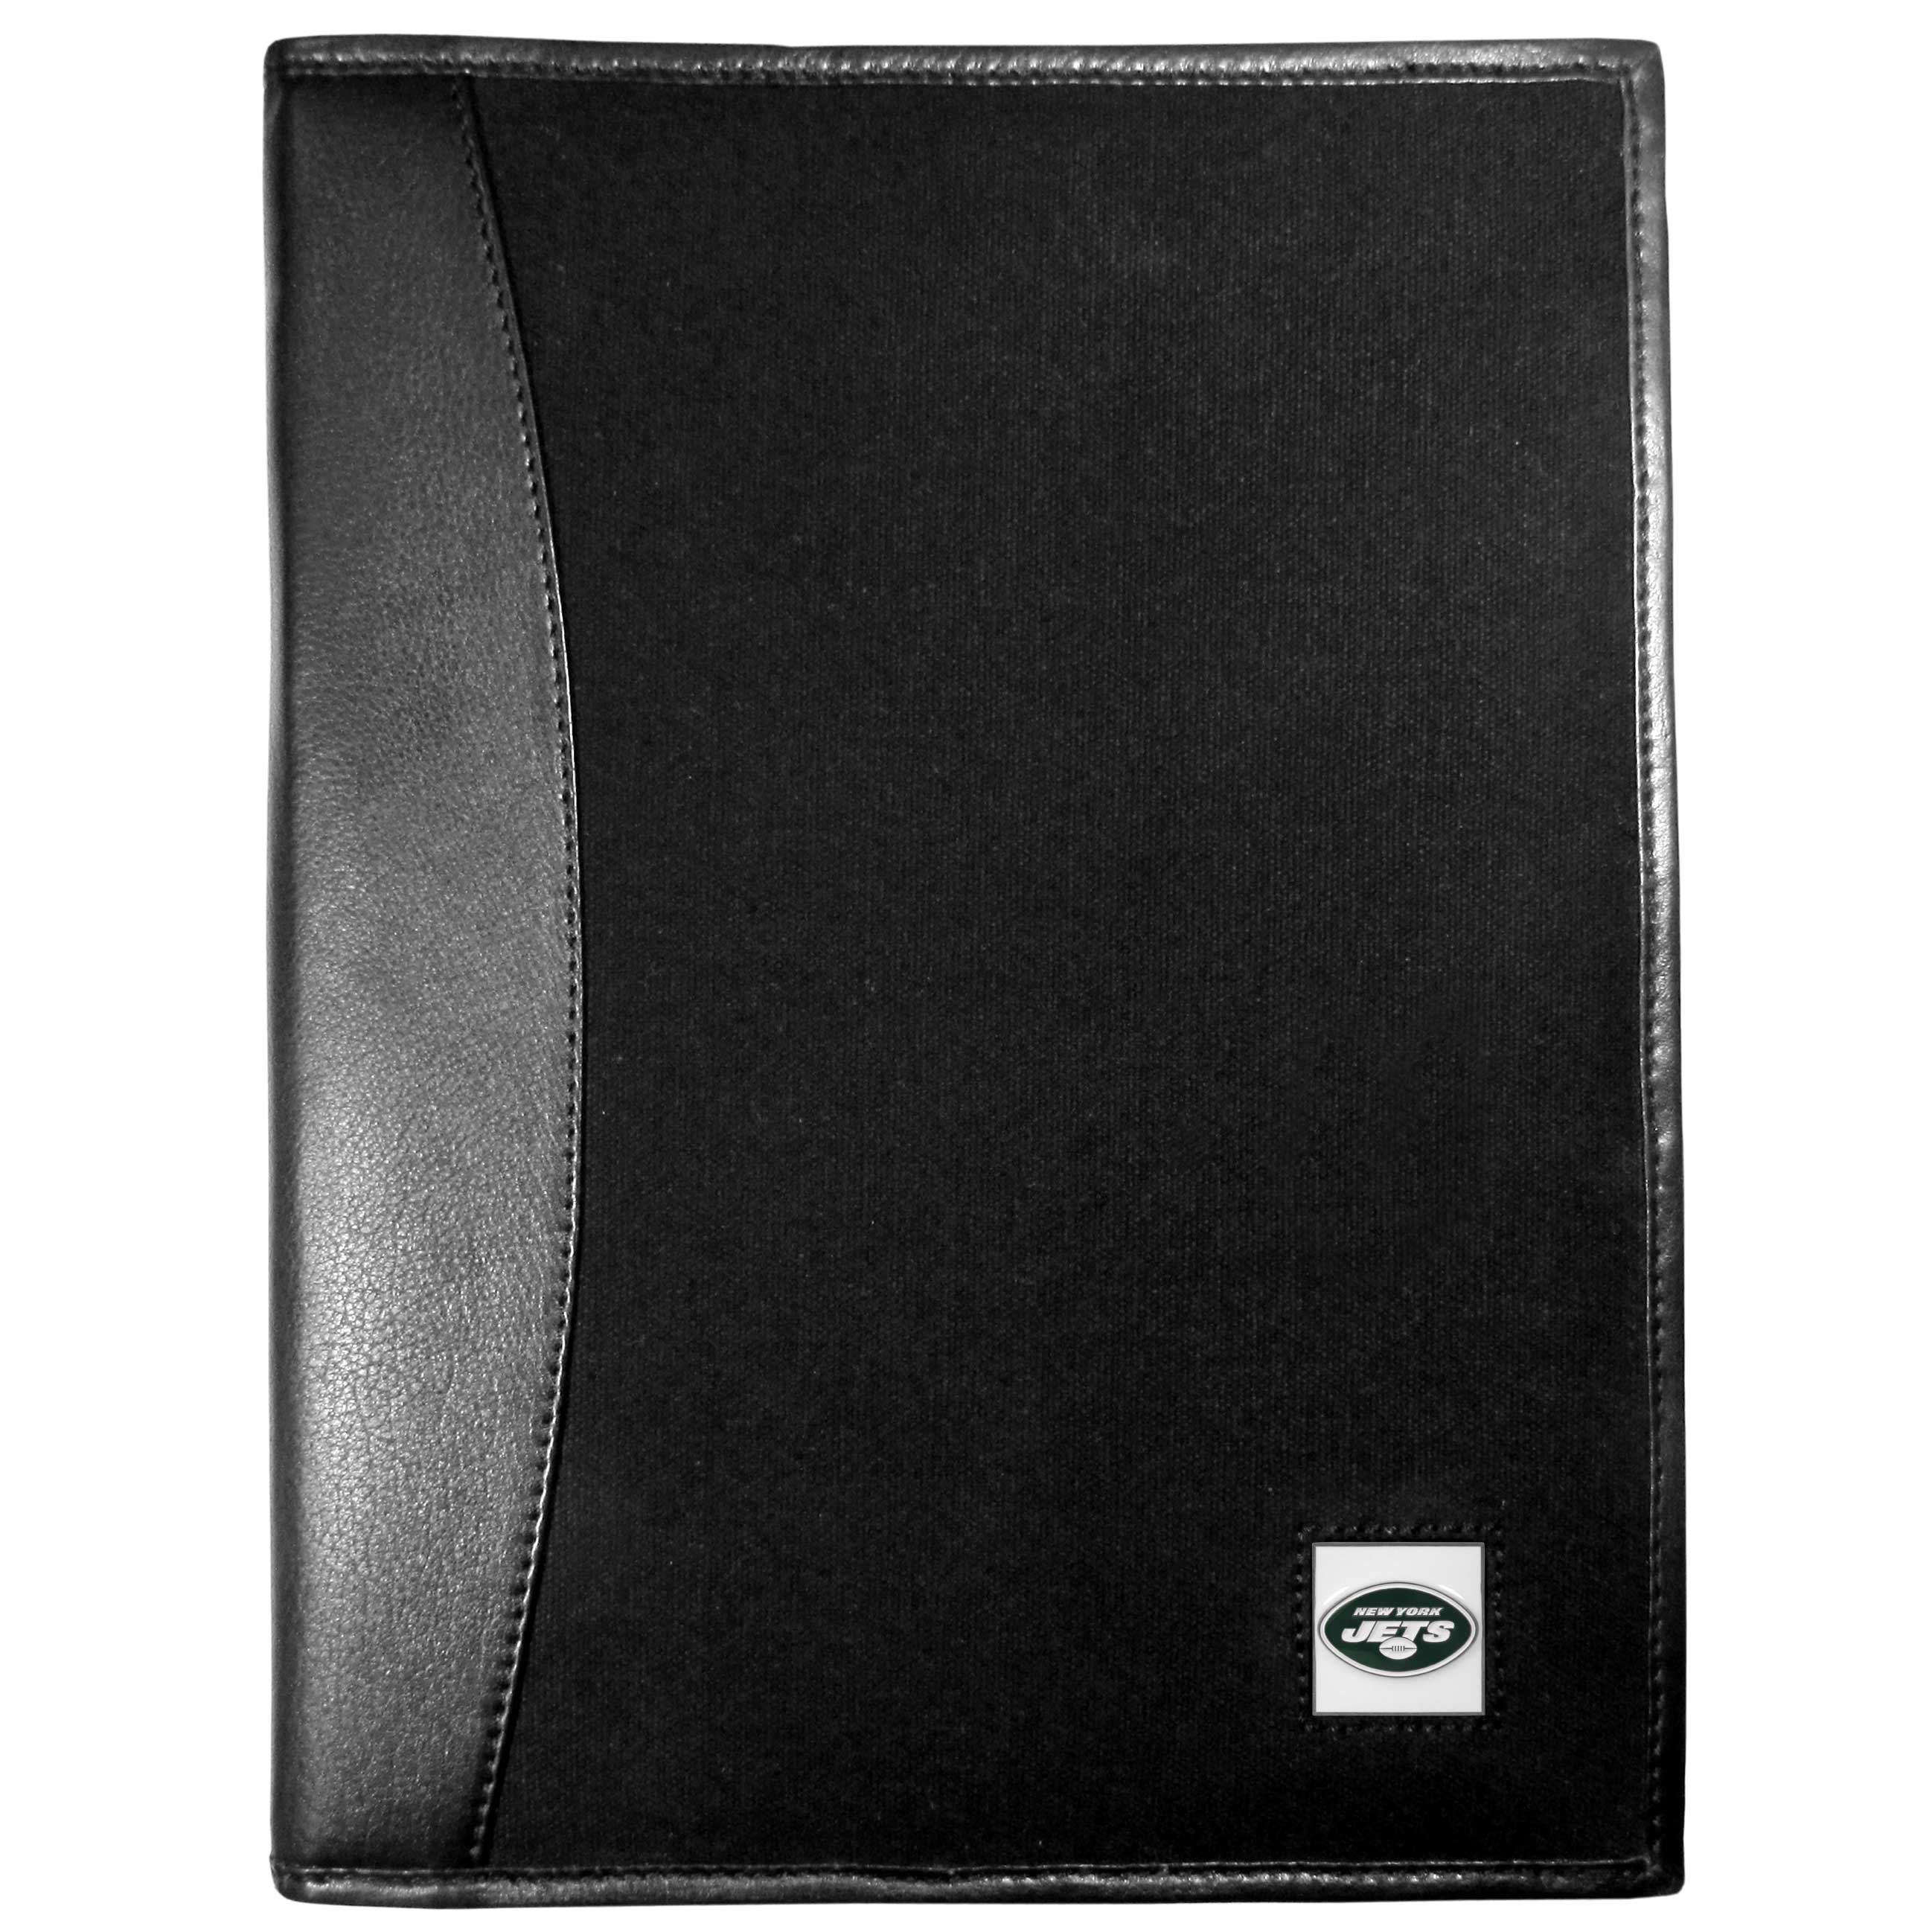 New York Jets Leather and Canvas Padfolio - Our leather and canvas padfolio perfectly blends form and function. The attractive portfolio is bound in fine grain leather with an attractive canvas finish and the interior is a soft nylon. This high quality business accessory also features a fully cast metal New York Jets emblem that is subtly set in the corner of the organizer. It is packed with features like 6 card slots for badges, business cards, hotel keys or credit cards and ID with a large pocket for loose papers and a writing tablet slot making it a must-have for the professional on the go.